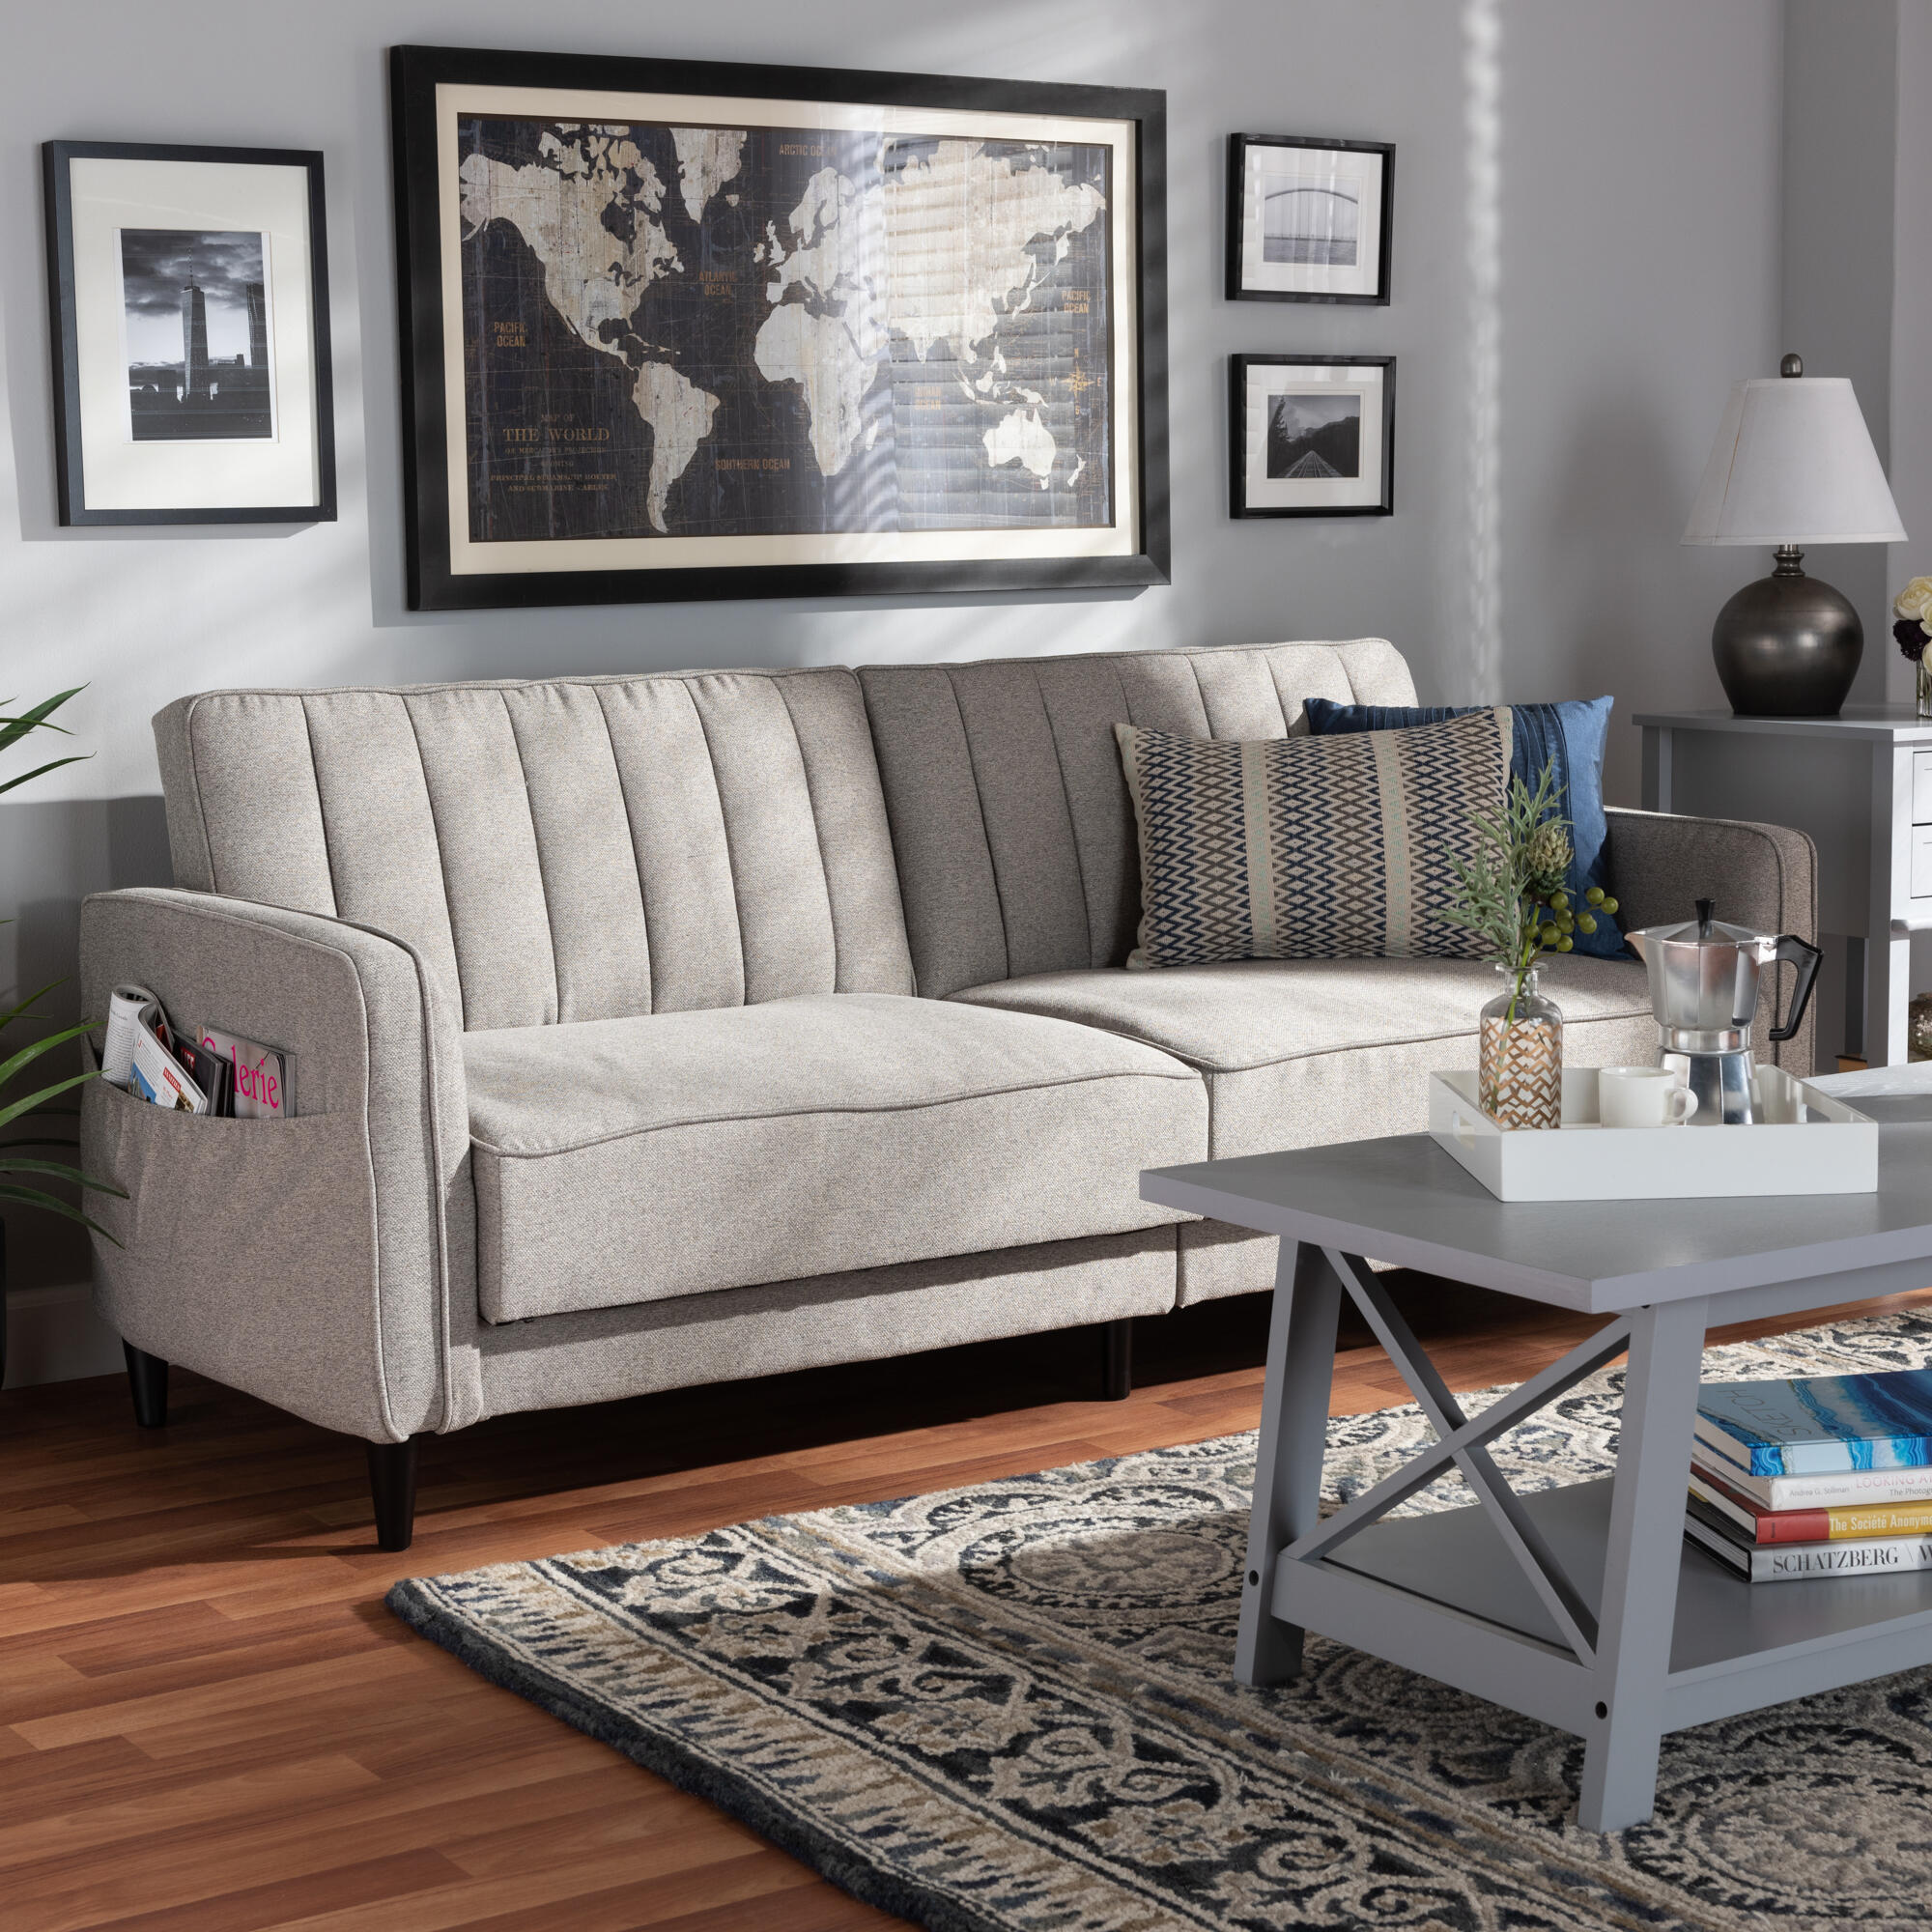 10 Best Cheap Sleeper Sofas Under 500 Apartment Therapy